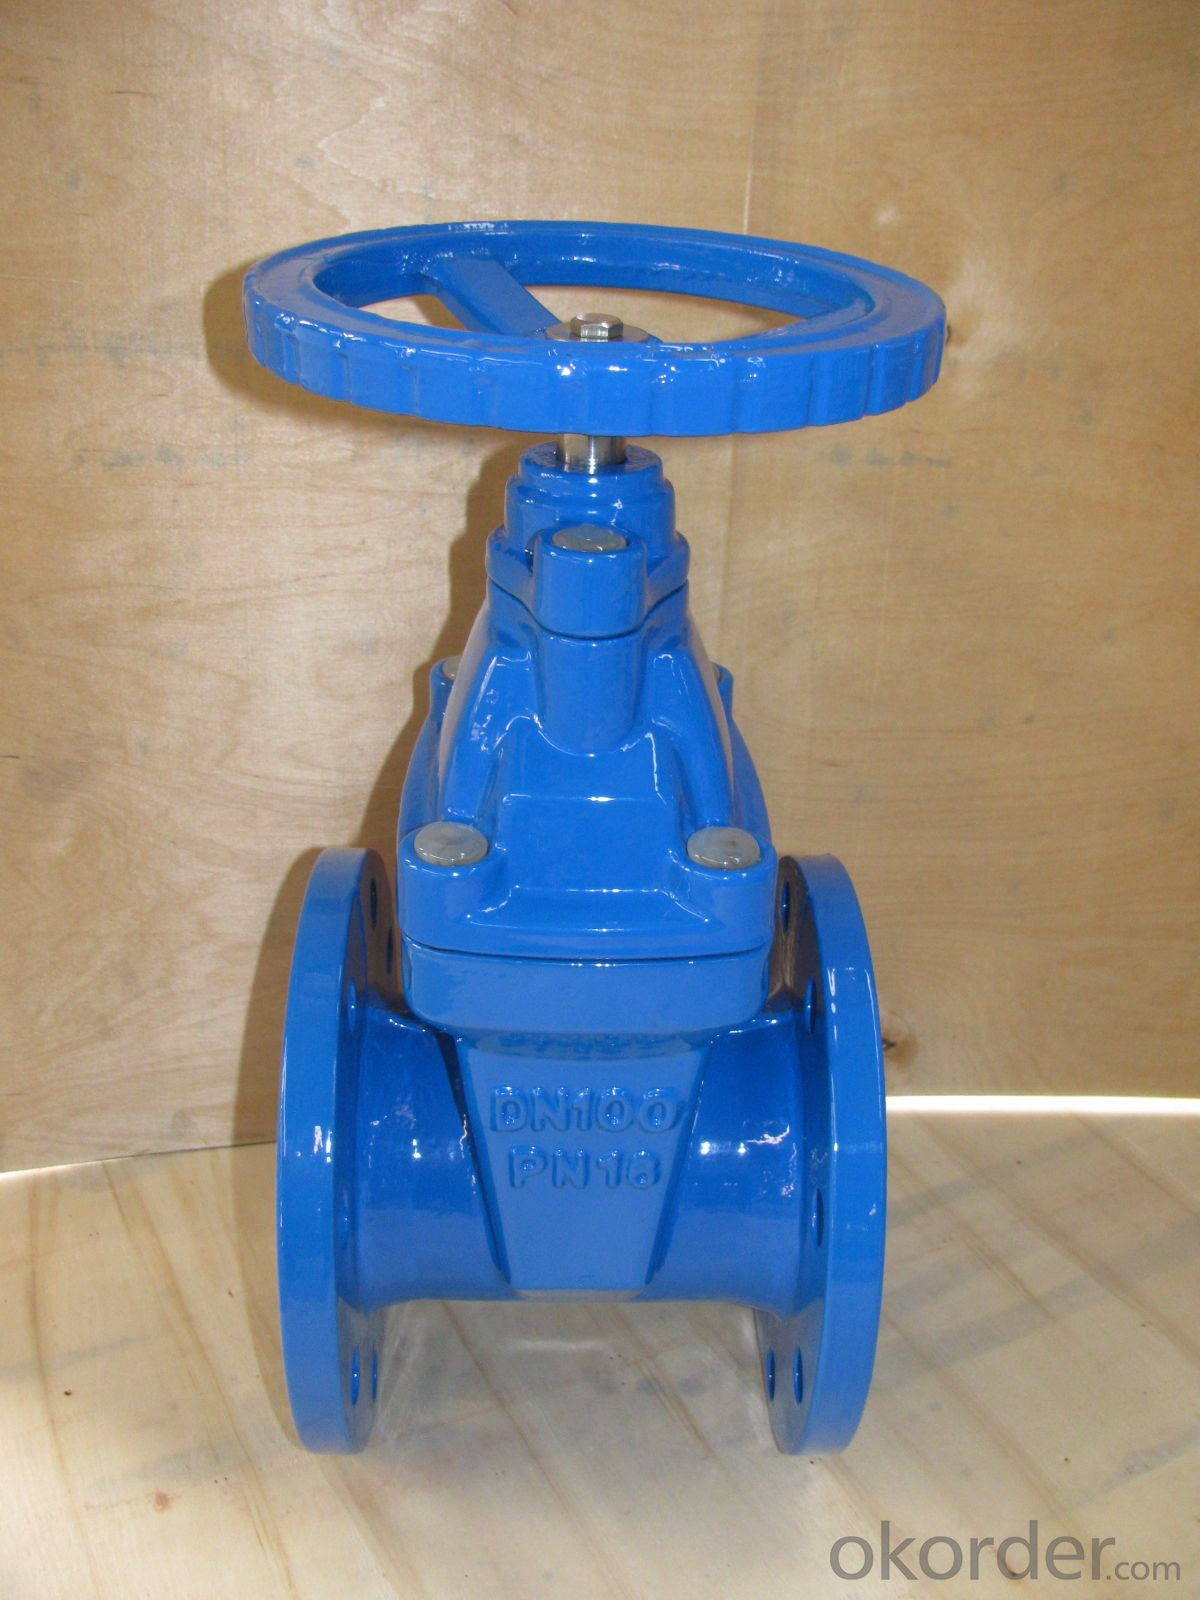 Non-rising Stem Metal Seated Gate Valve DN100